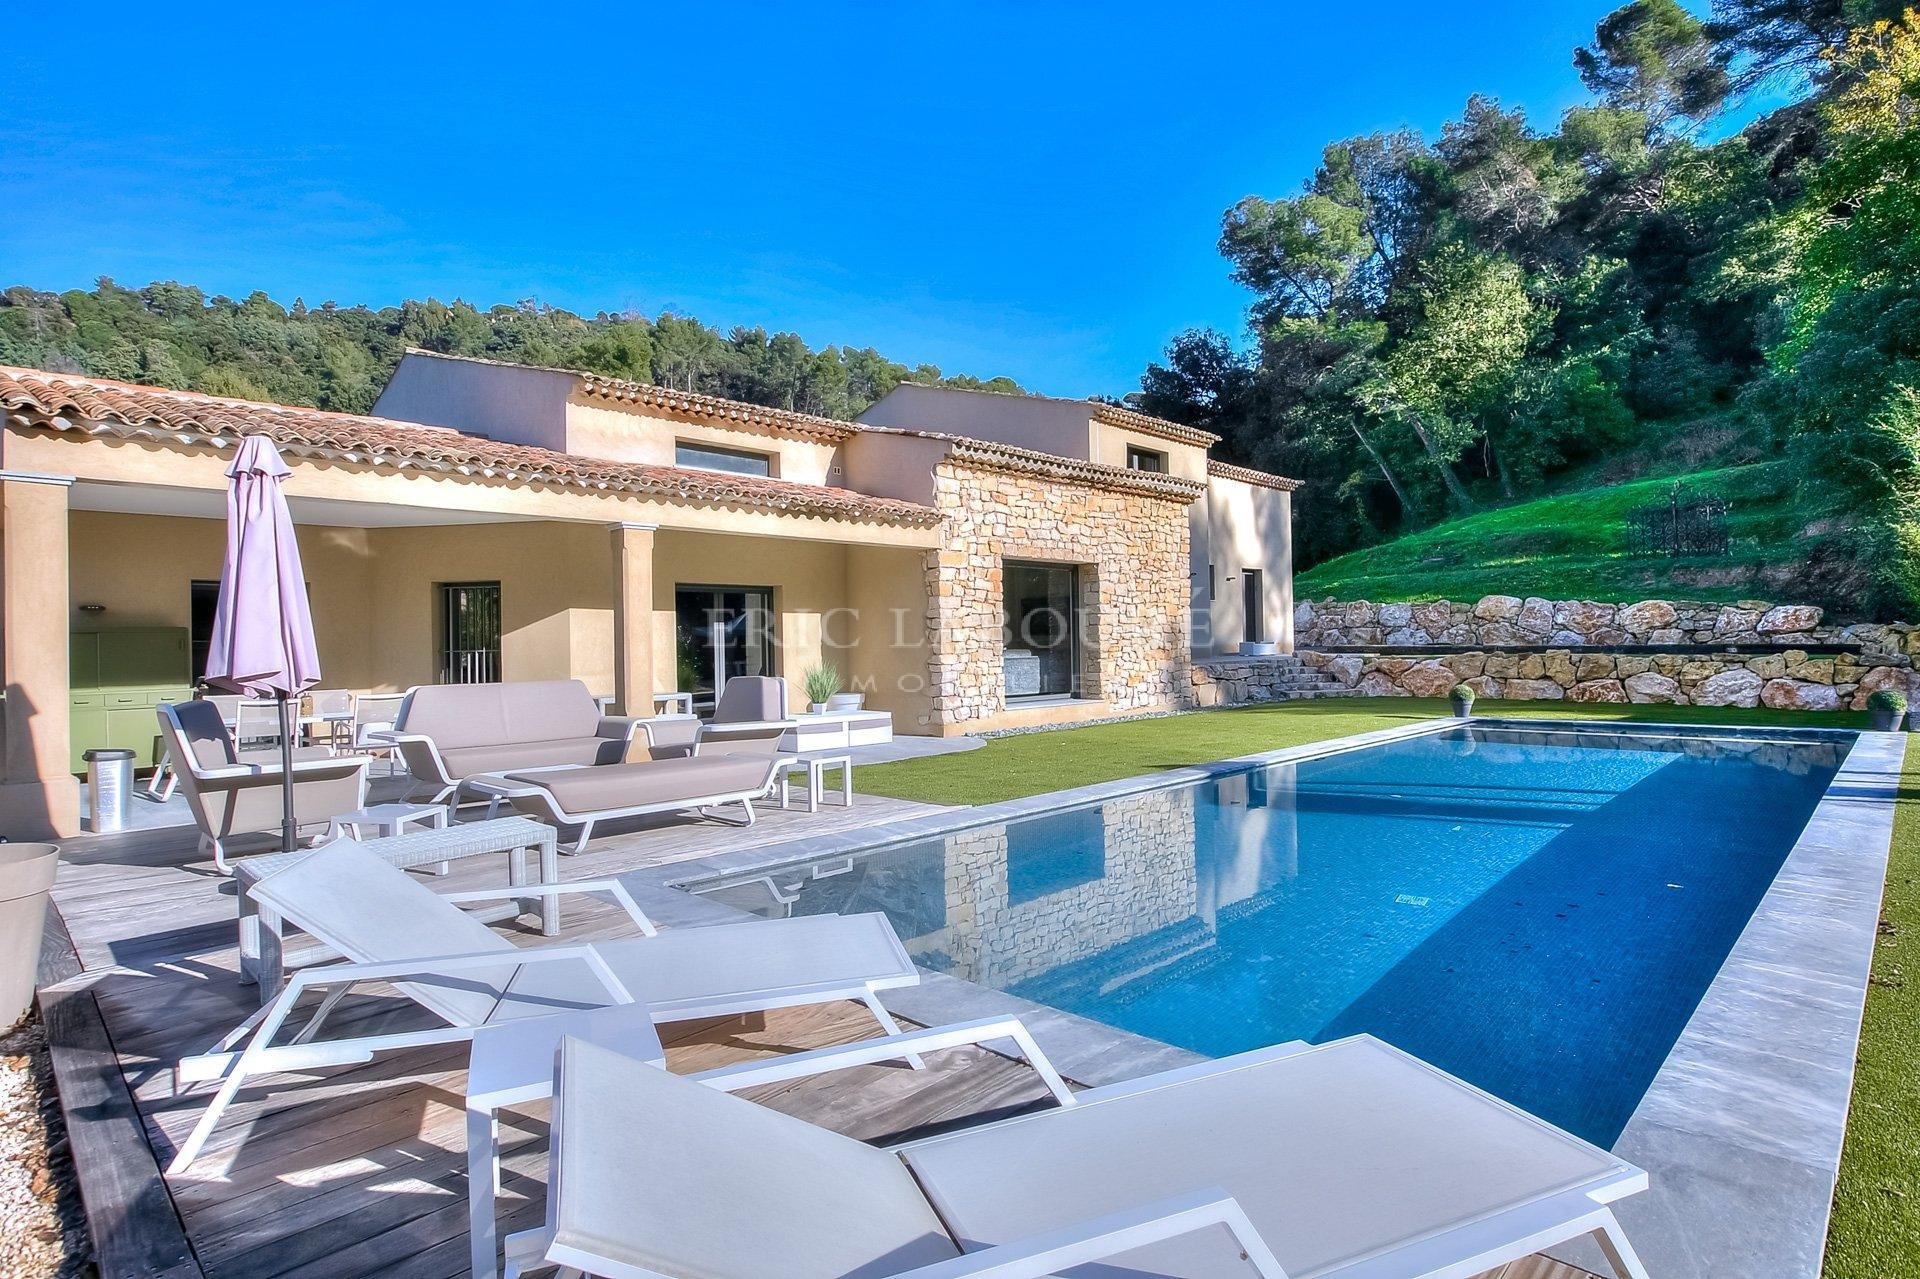 Sale 1 hectare property - stone house minutes close to Mougins